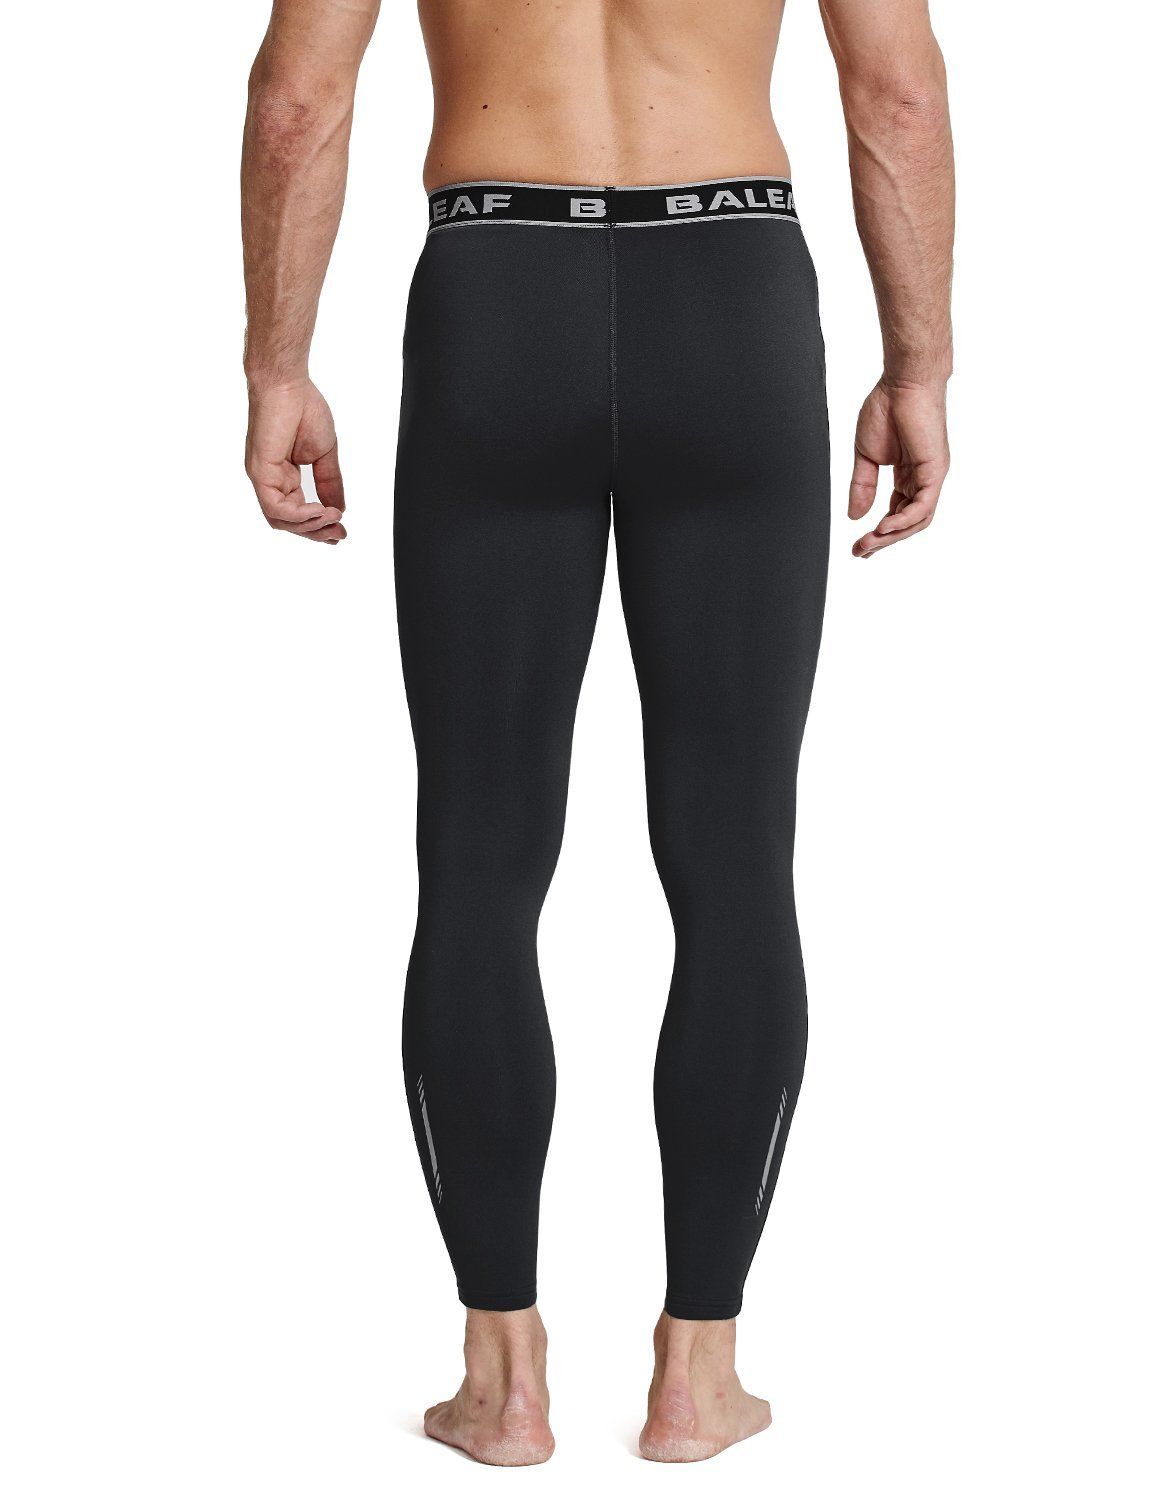 31aac03637405 Amazon.com: Baleaf Men's Thermal Compression Baselayer Tights Fleece Lined  Pants: Clothing